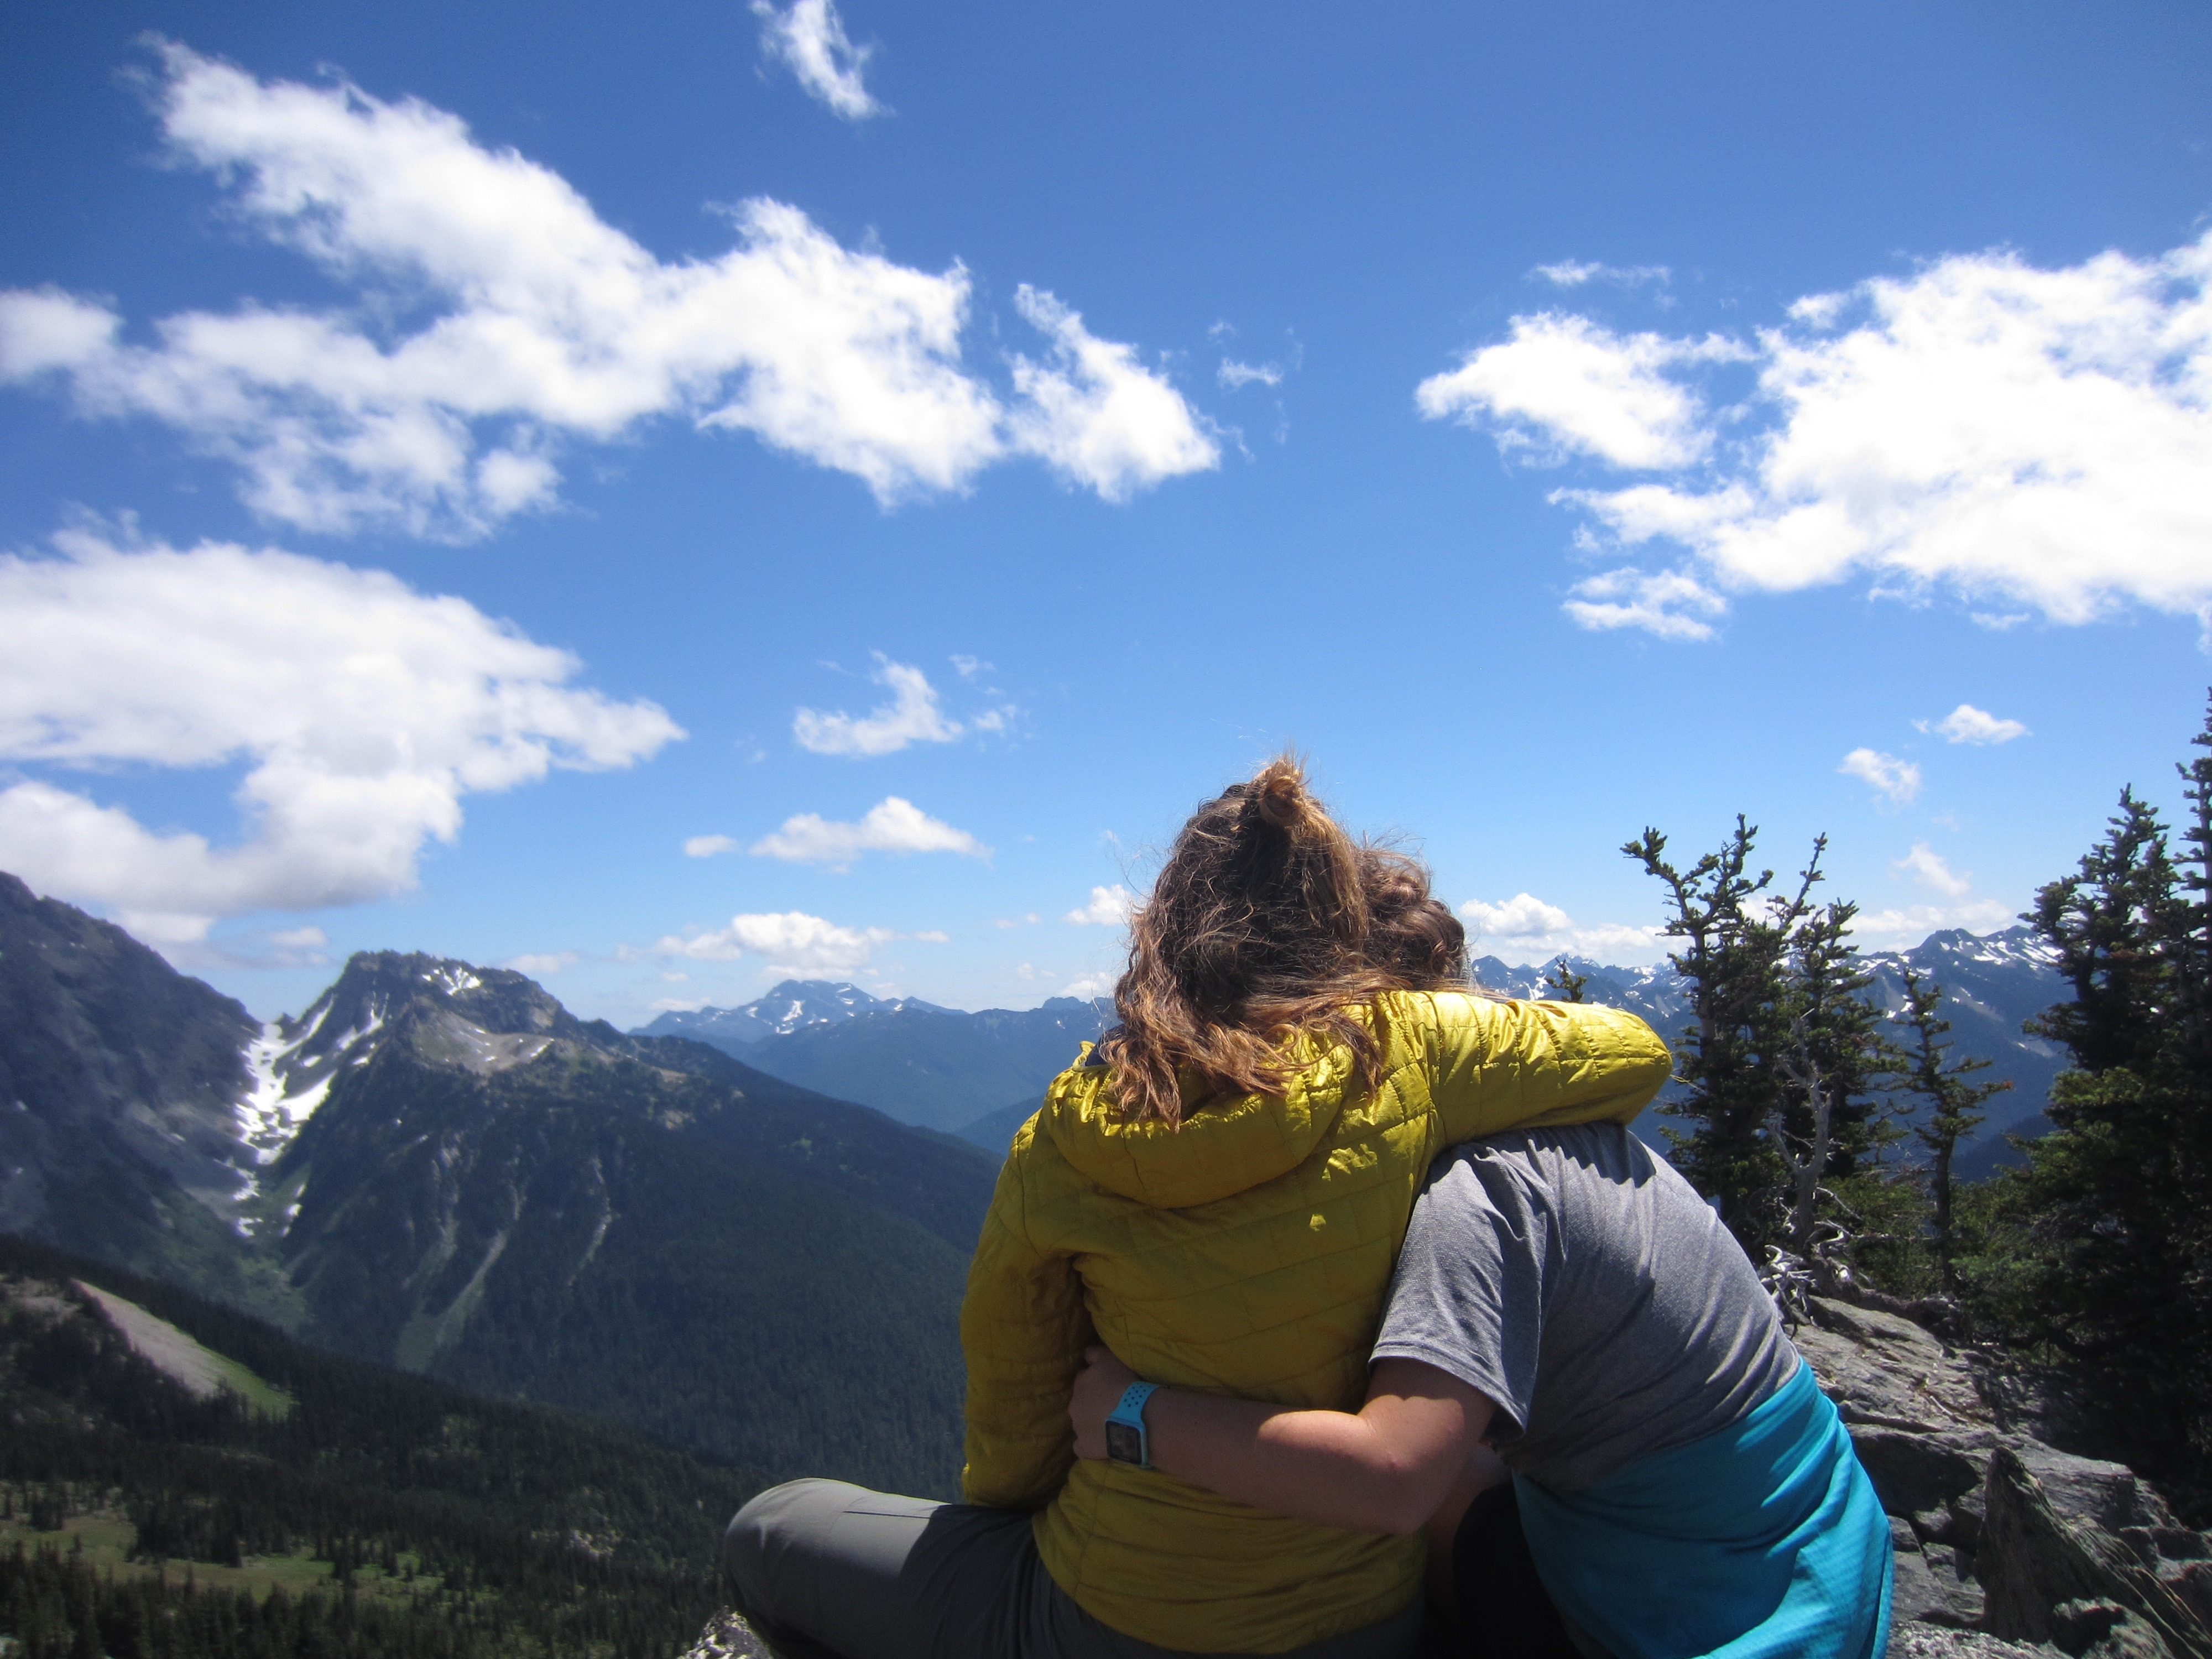 two NOLS students put their arms around each other and celebrate summiting a peak in the Pacific Northwest